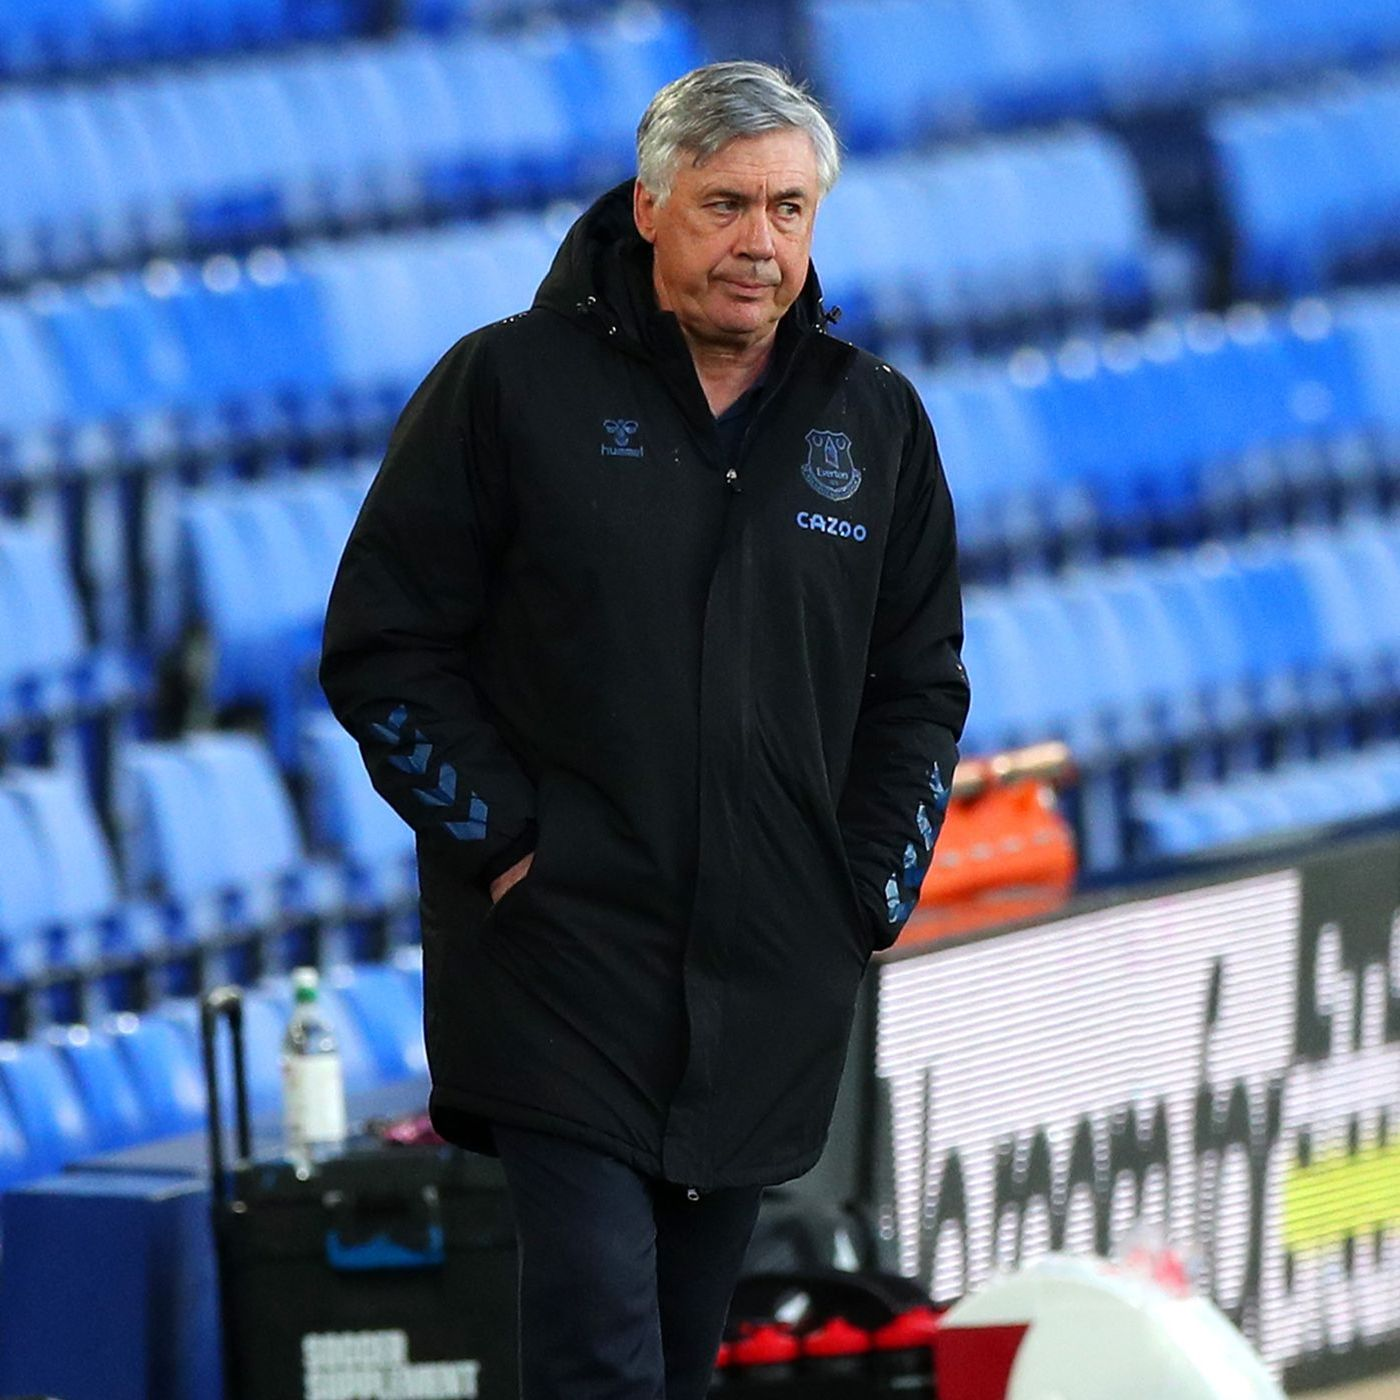 Royal Blue: Carlo Ancelotti question asked as Everton face another massive transfer window